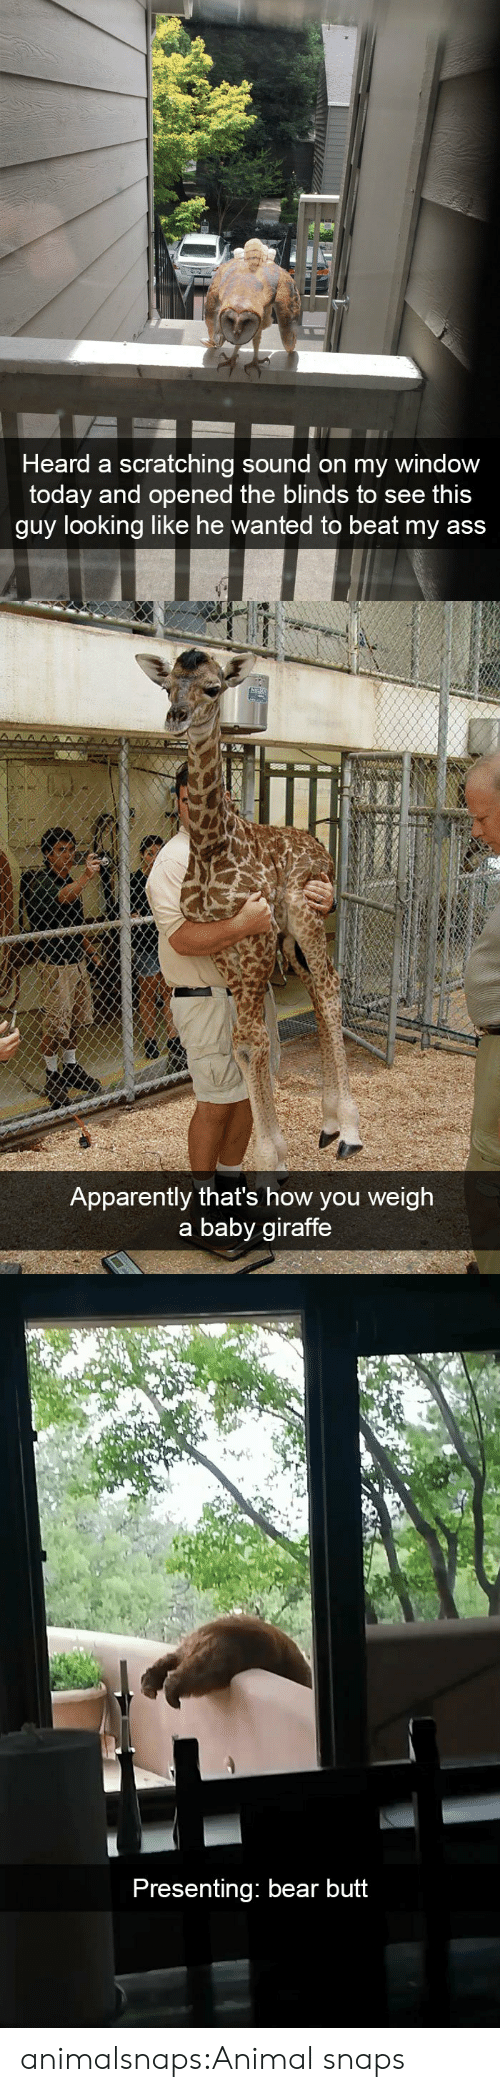 baby giraffe: Heard a scratching sound on my window  today and opened the blinds to see thi:s  guy looking like he wanted to beat my ass   Apparently that's how you weigh  a baby giraffe   Presenting: bear butt animalsnaps:Animal snaps